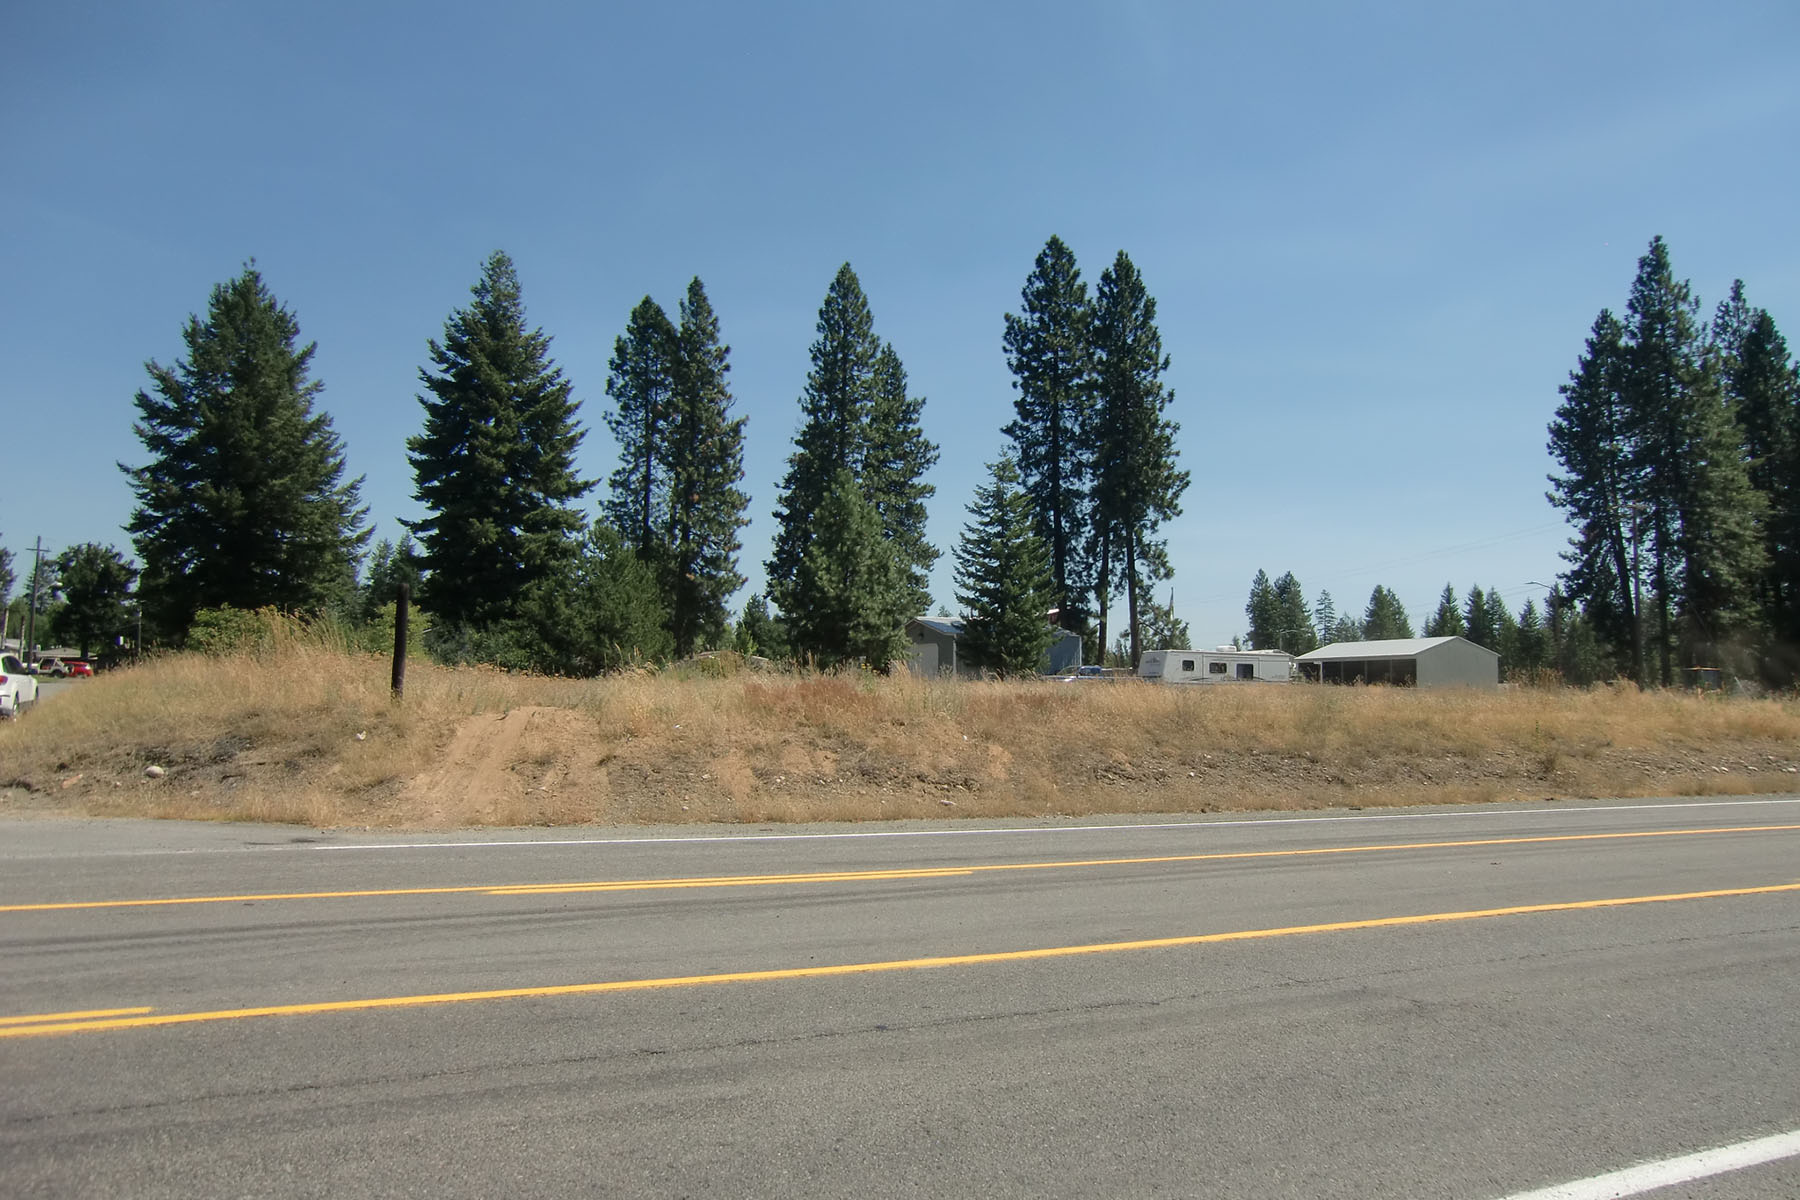 Prime Commercial Lot NNA 5th St Spirit Lake, Idaho 83869 United States